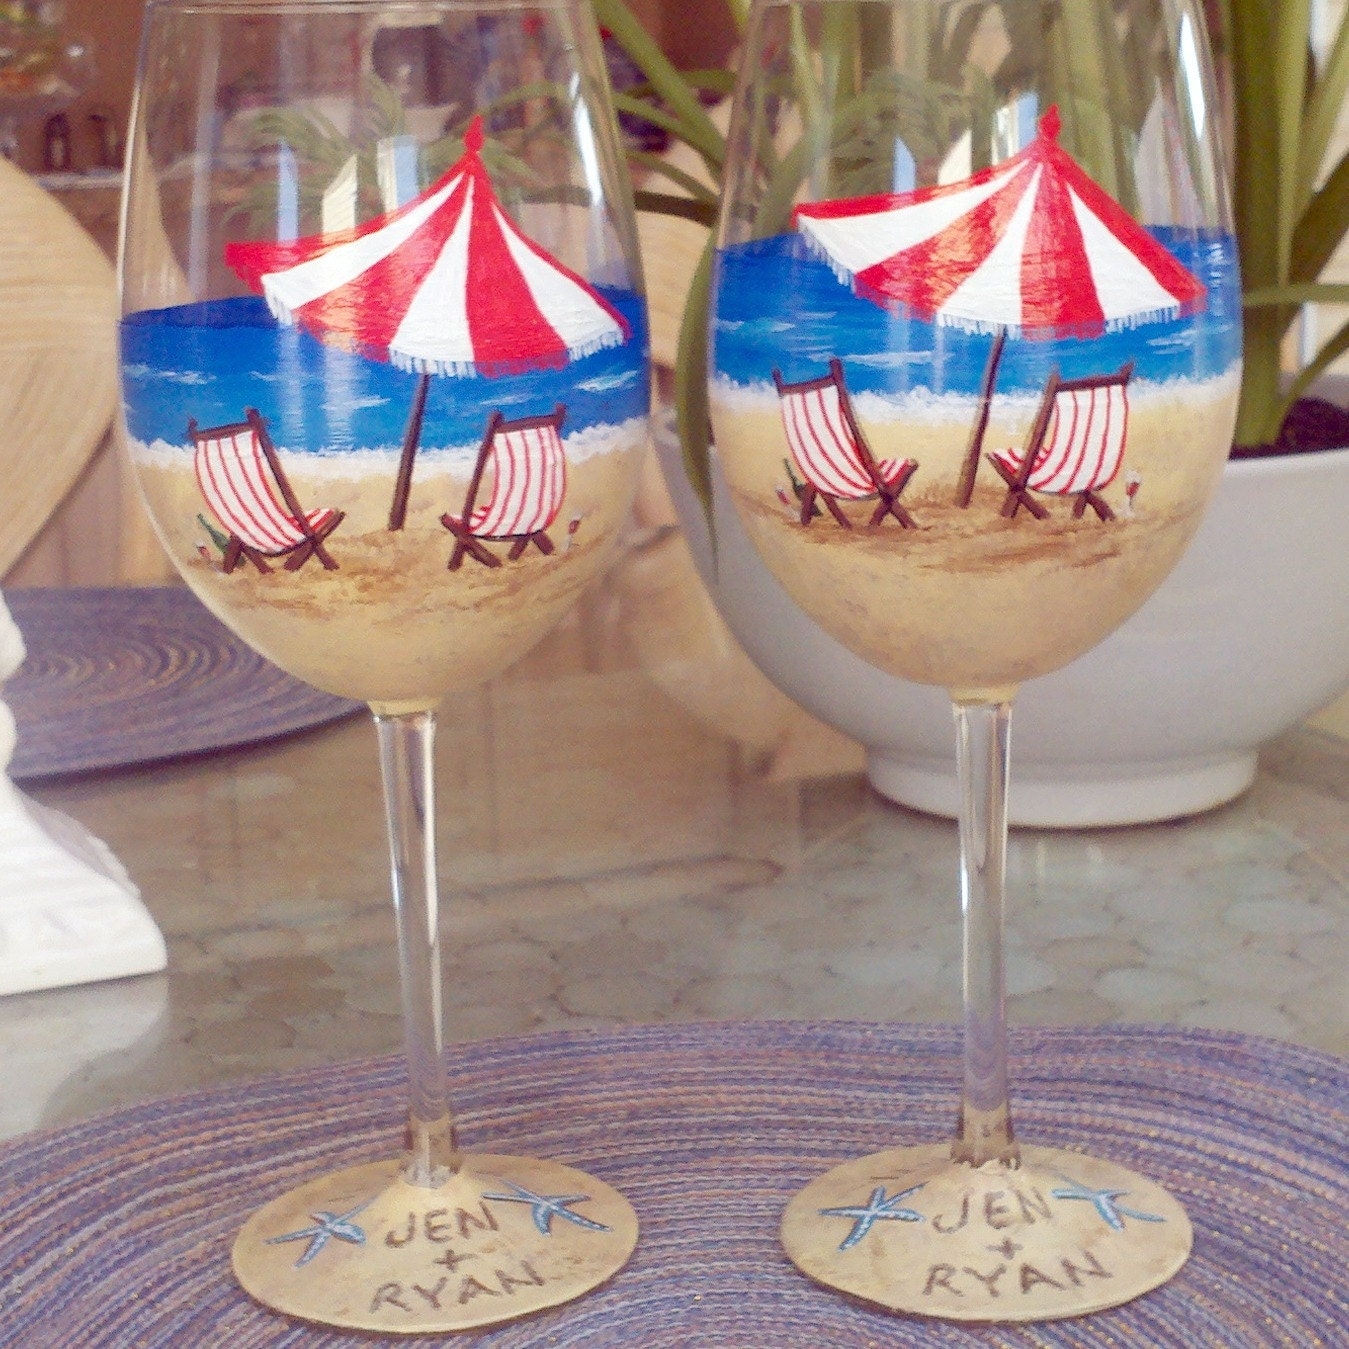 Beach scene hand painted wine glasses by GlassesbyJoAnne on Etsy